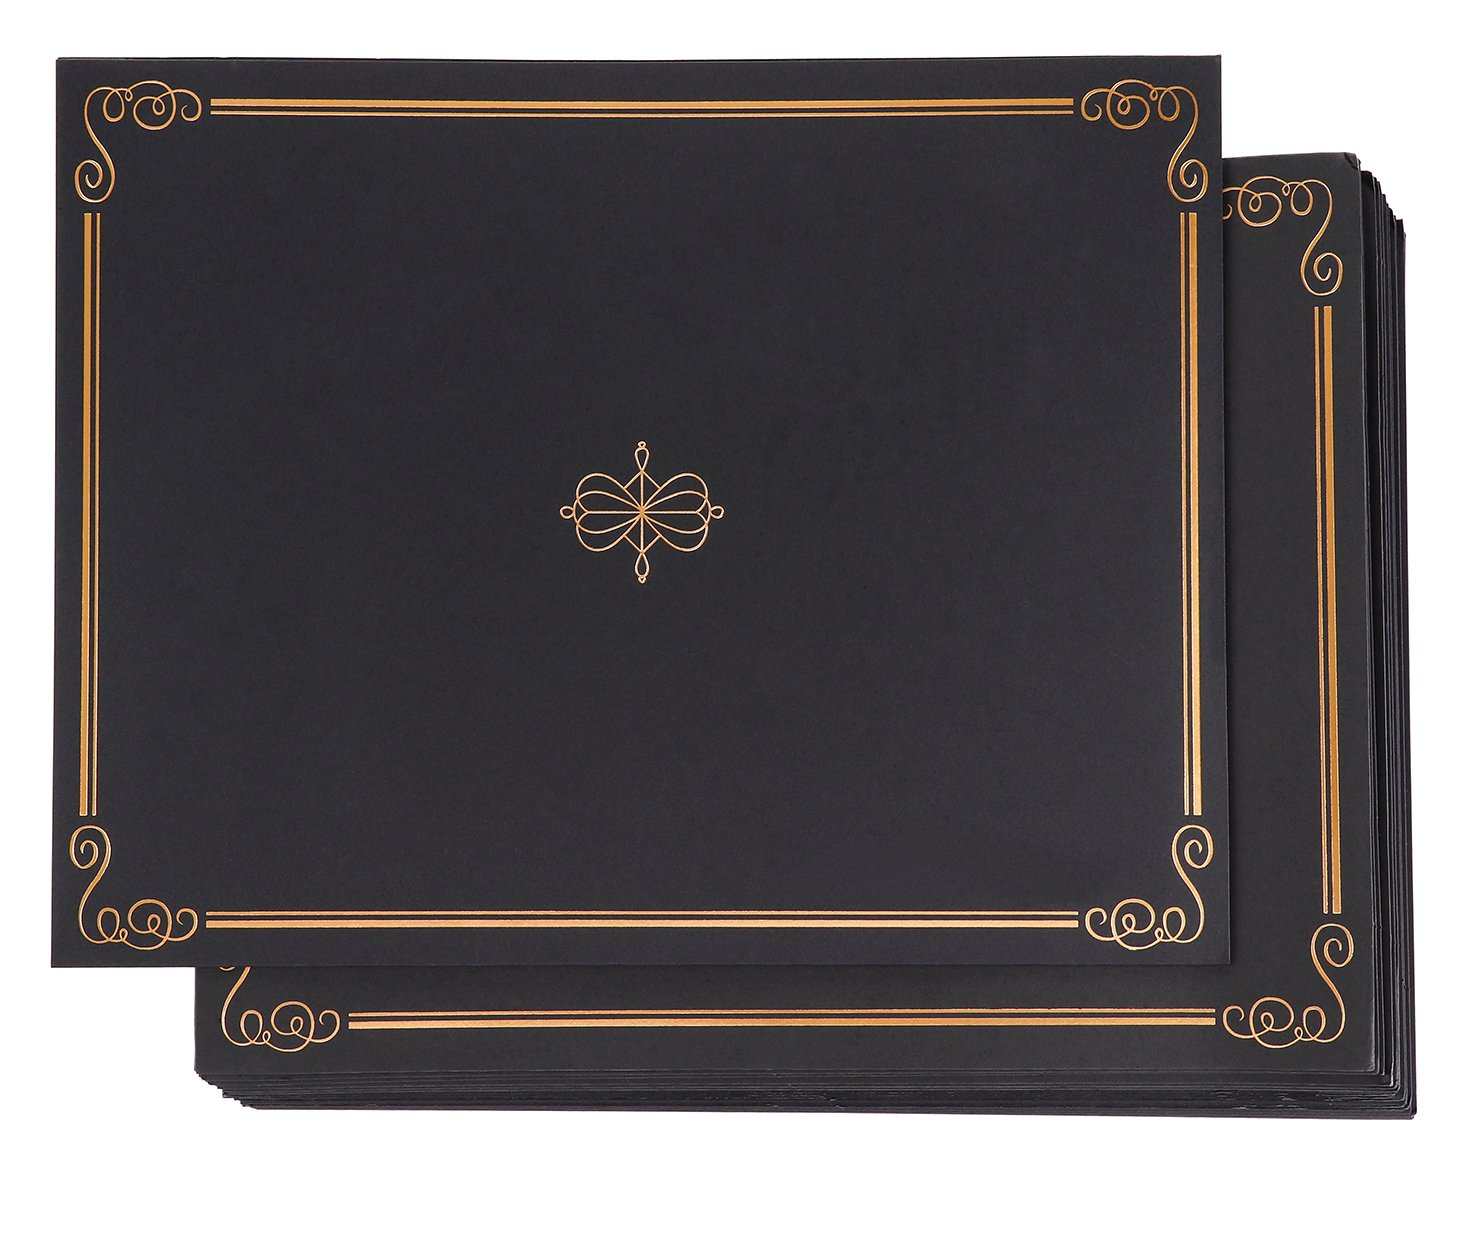 Certificate Holders - 24-Pack Diploma Cover, Document Cover for Letter-Sized Award Certificates, Black, Gold Foil, 11.2 x 8.7 inches